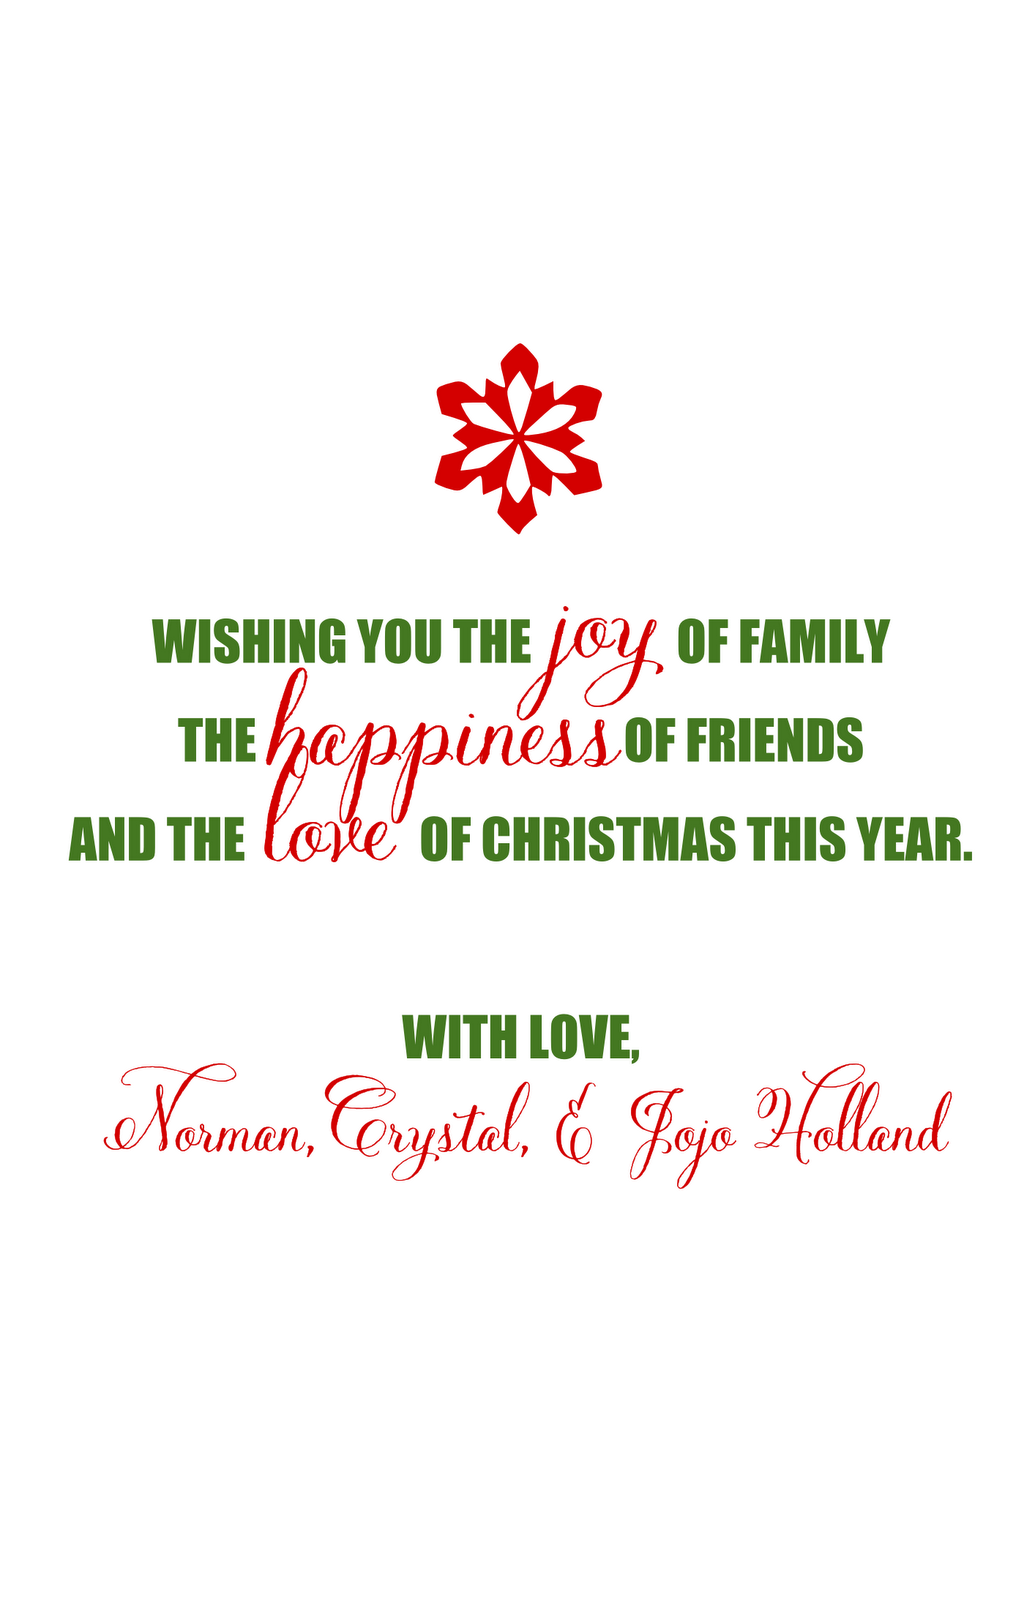 Christmas card messages employees inspiring quotes and words in life season greetings messages to employees 2015 kristyandbryce Choice Image